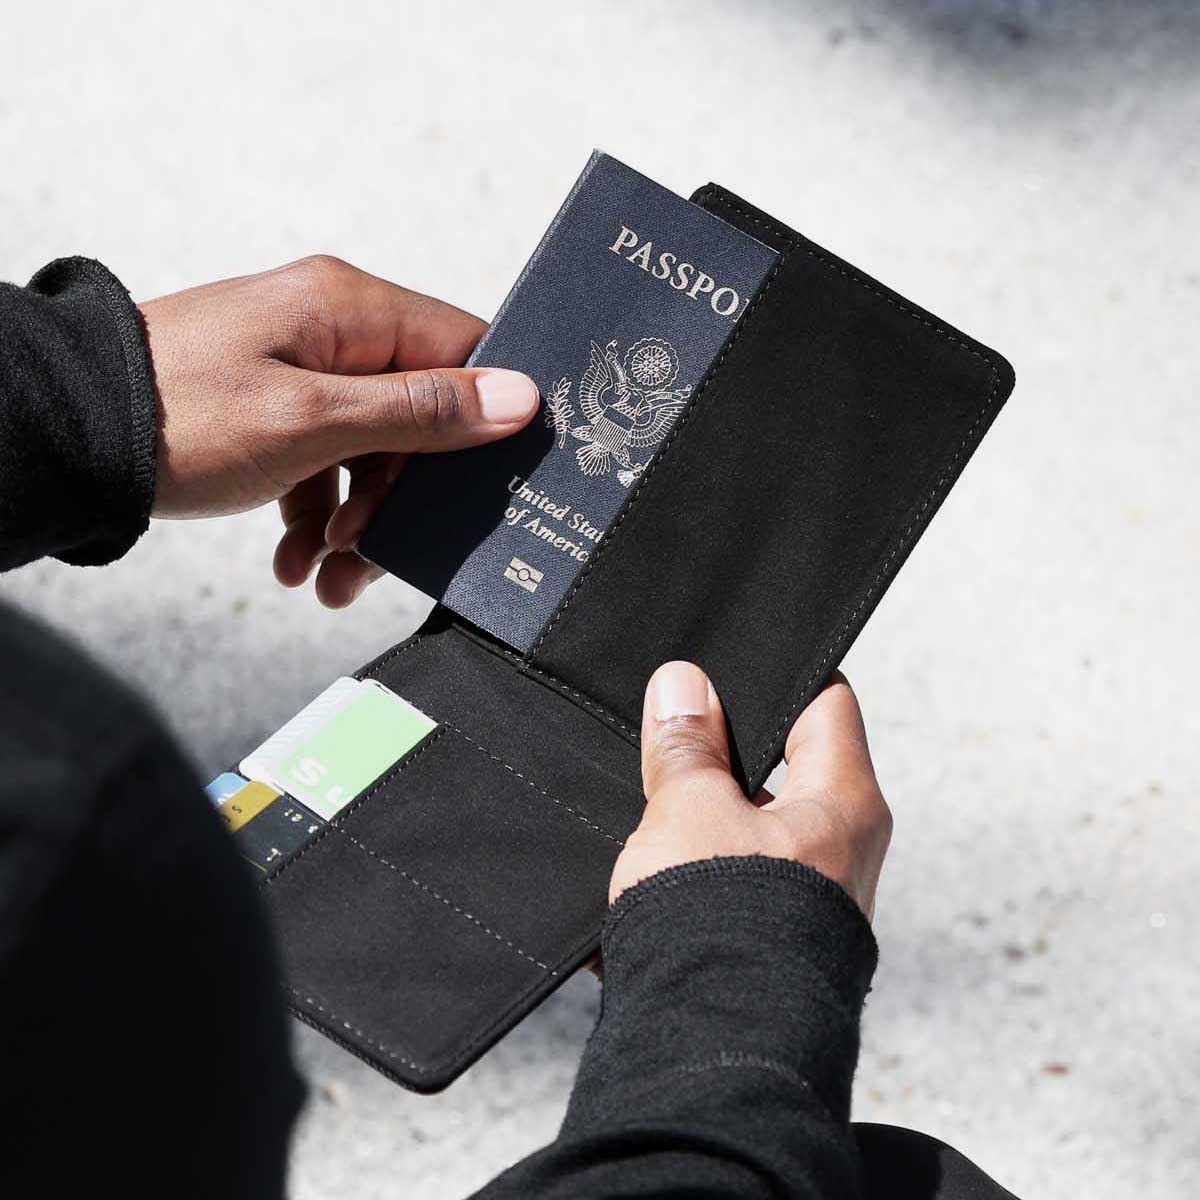 44001_travelwallet_blackcamo_passport.jpg